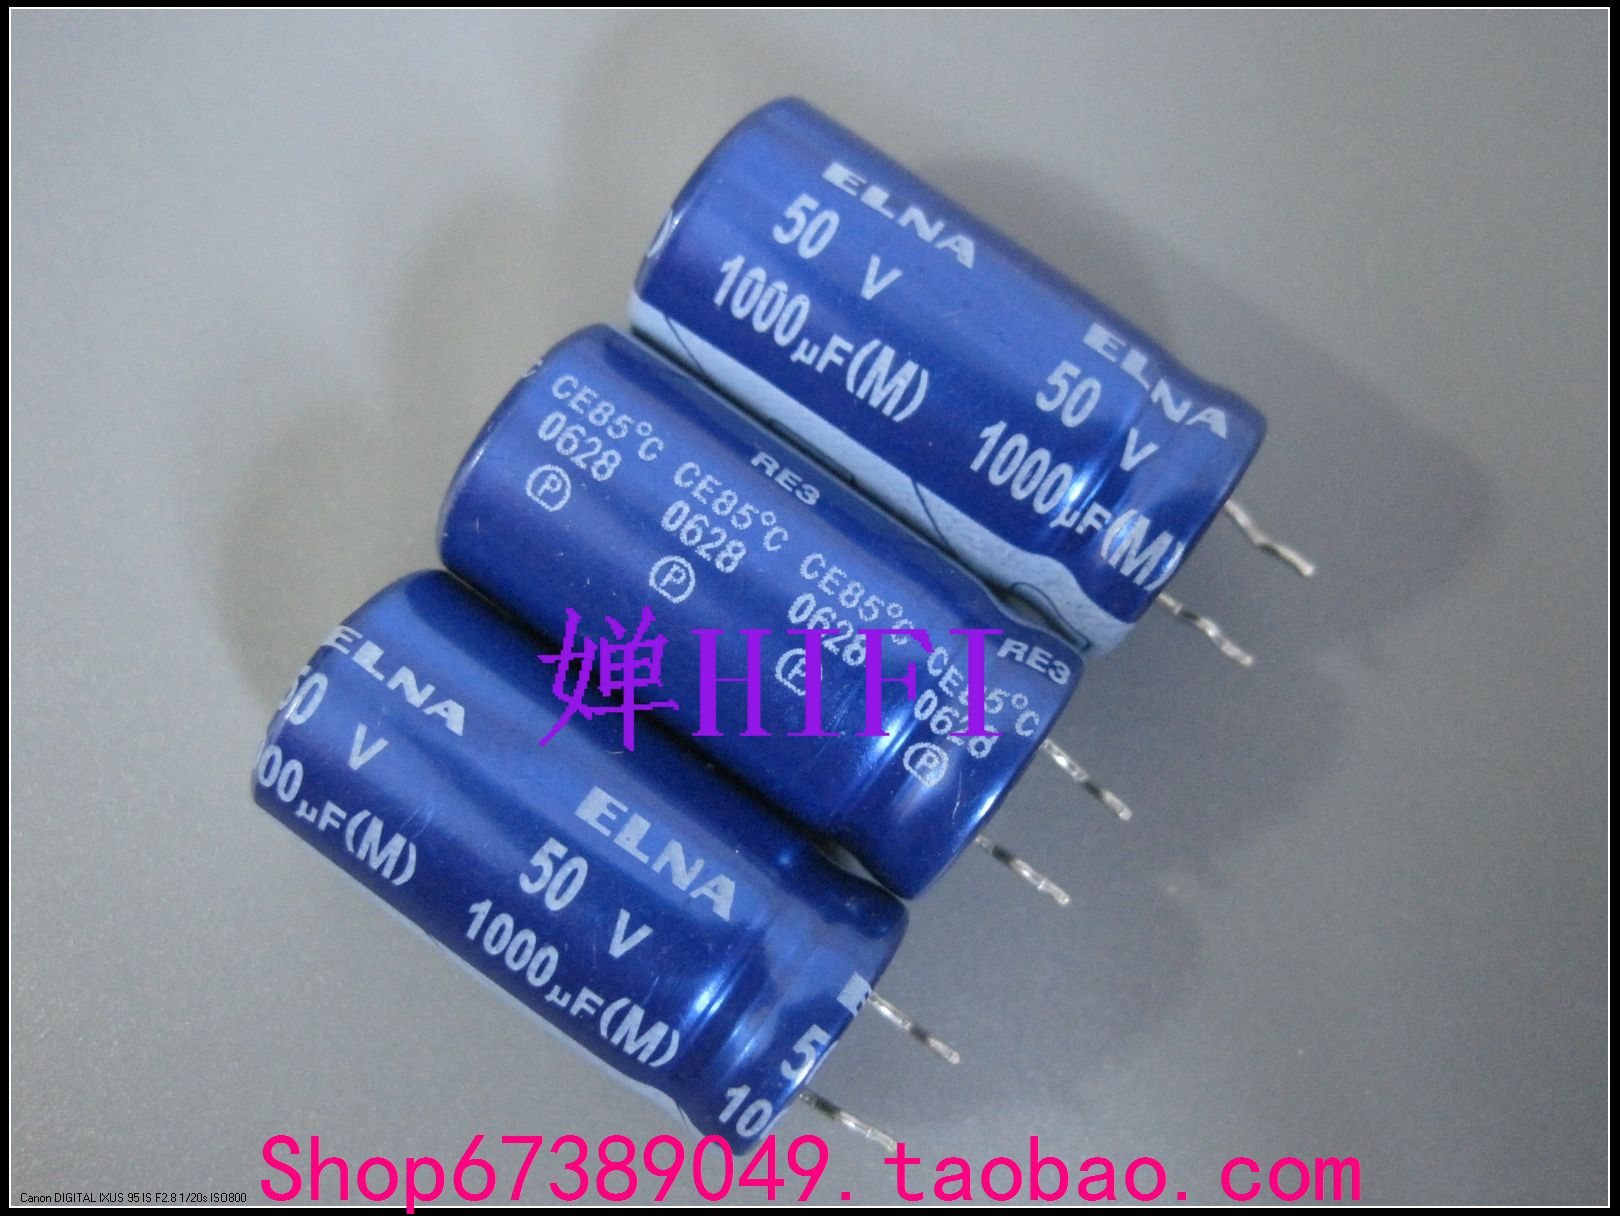 2019 Hot Sale 20PCS/50PCS Imported ELNA Original 50V 1000UF RE3 Blue Robe Electrolytic Capacitor Free Shipping